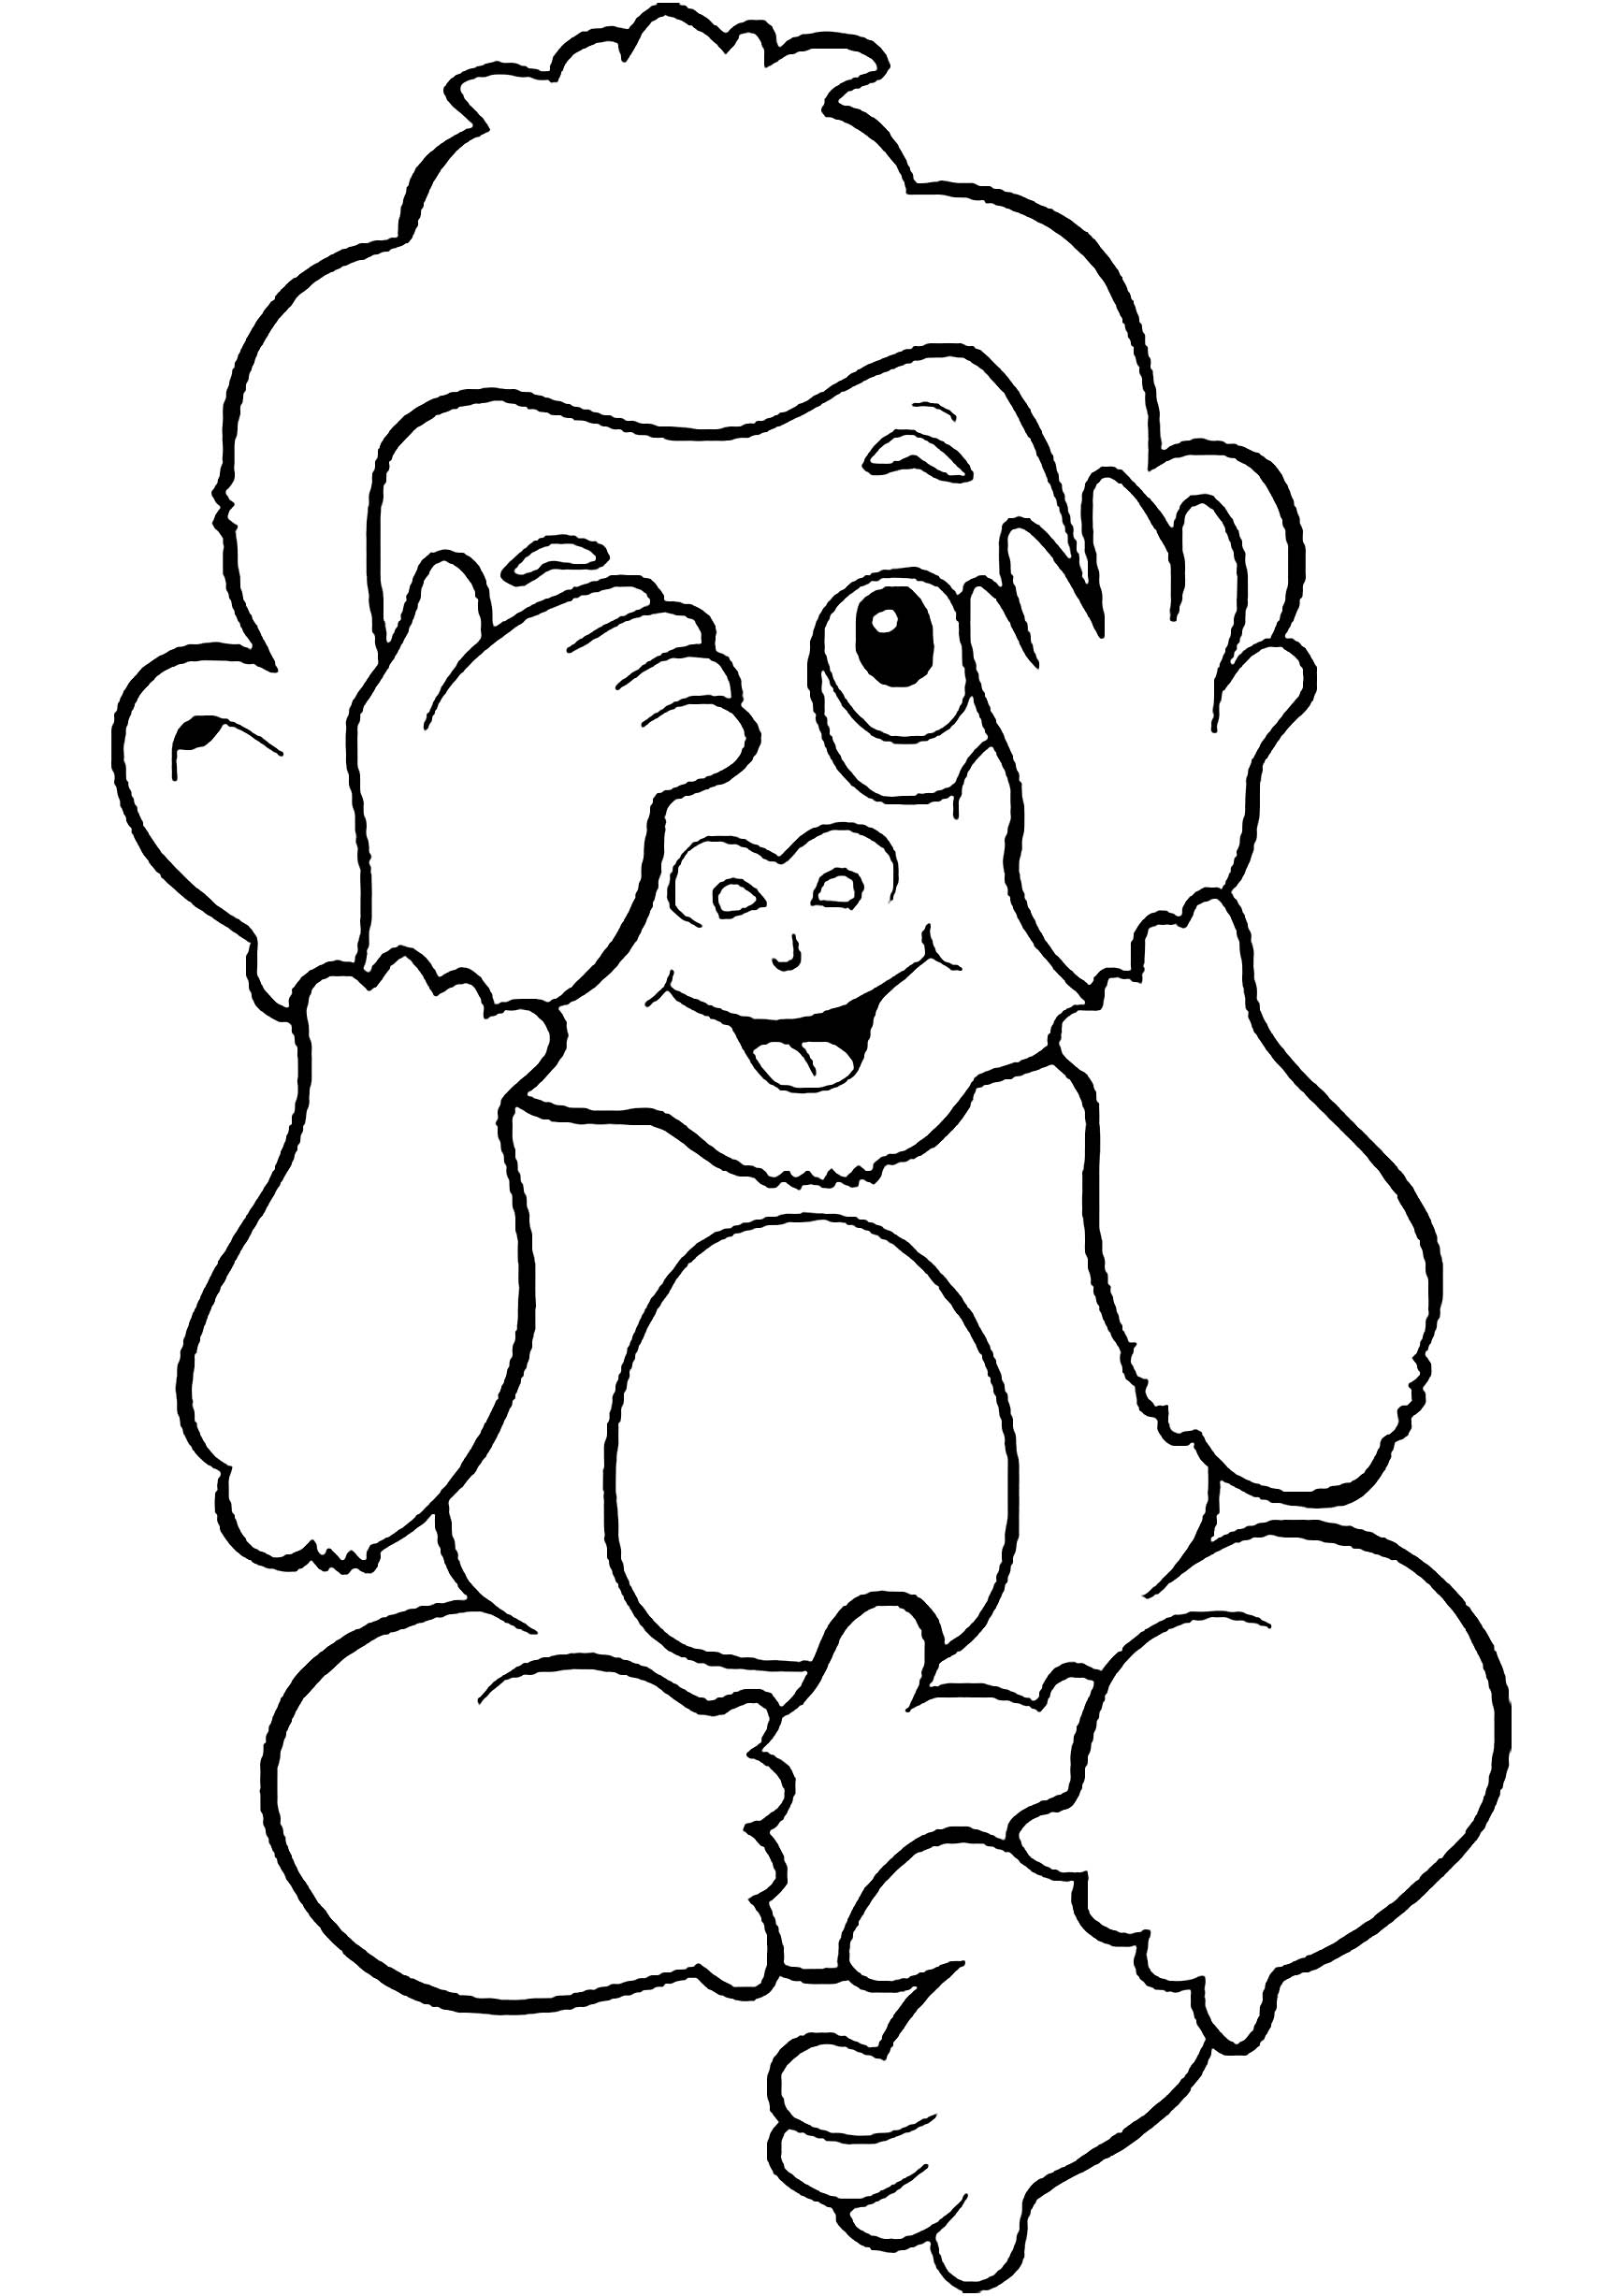 coloring pages of monkey monkeys to download monkeys kids coloring pages monkey of pages coloring